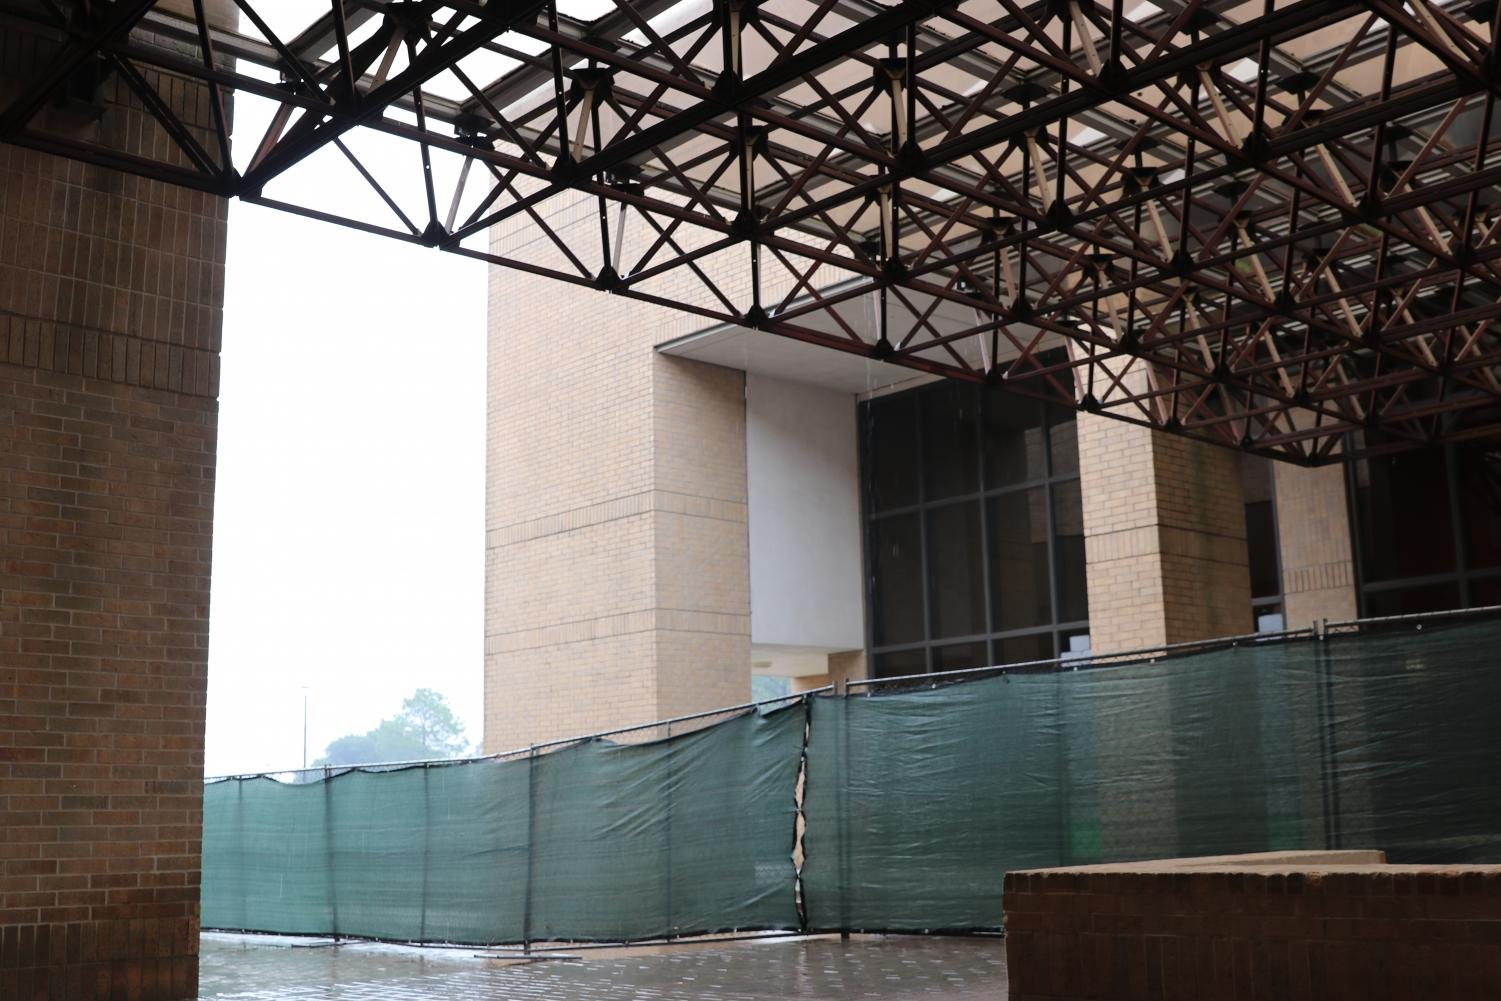 Students are getting used to the green fences around the school as long awaited renovation construction begins on the theater and an additional wing will be built behind the small gym.